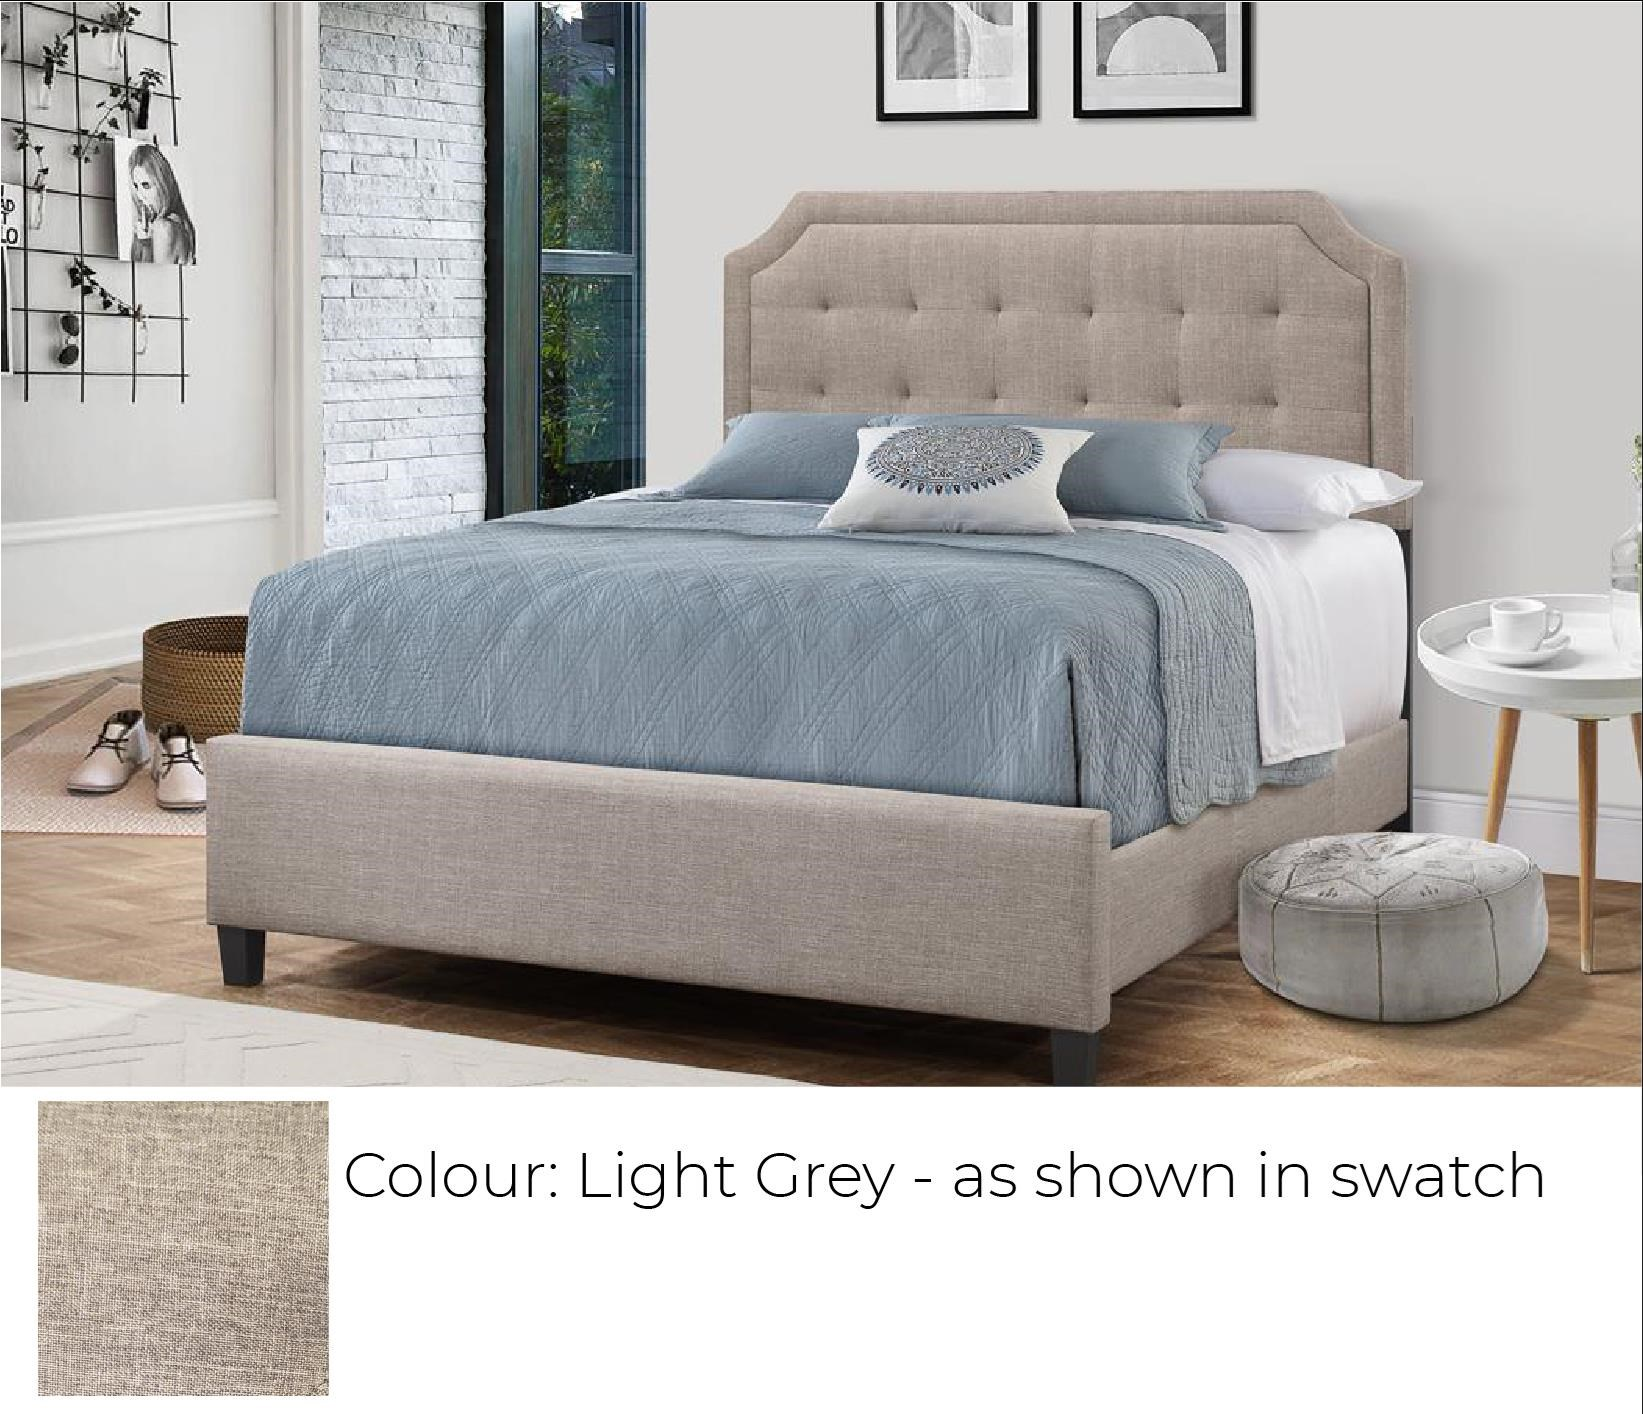 B623 - Ready to Assemble Upholstered Bed - Light Grey at Bennett's Furniture and Mattresses